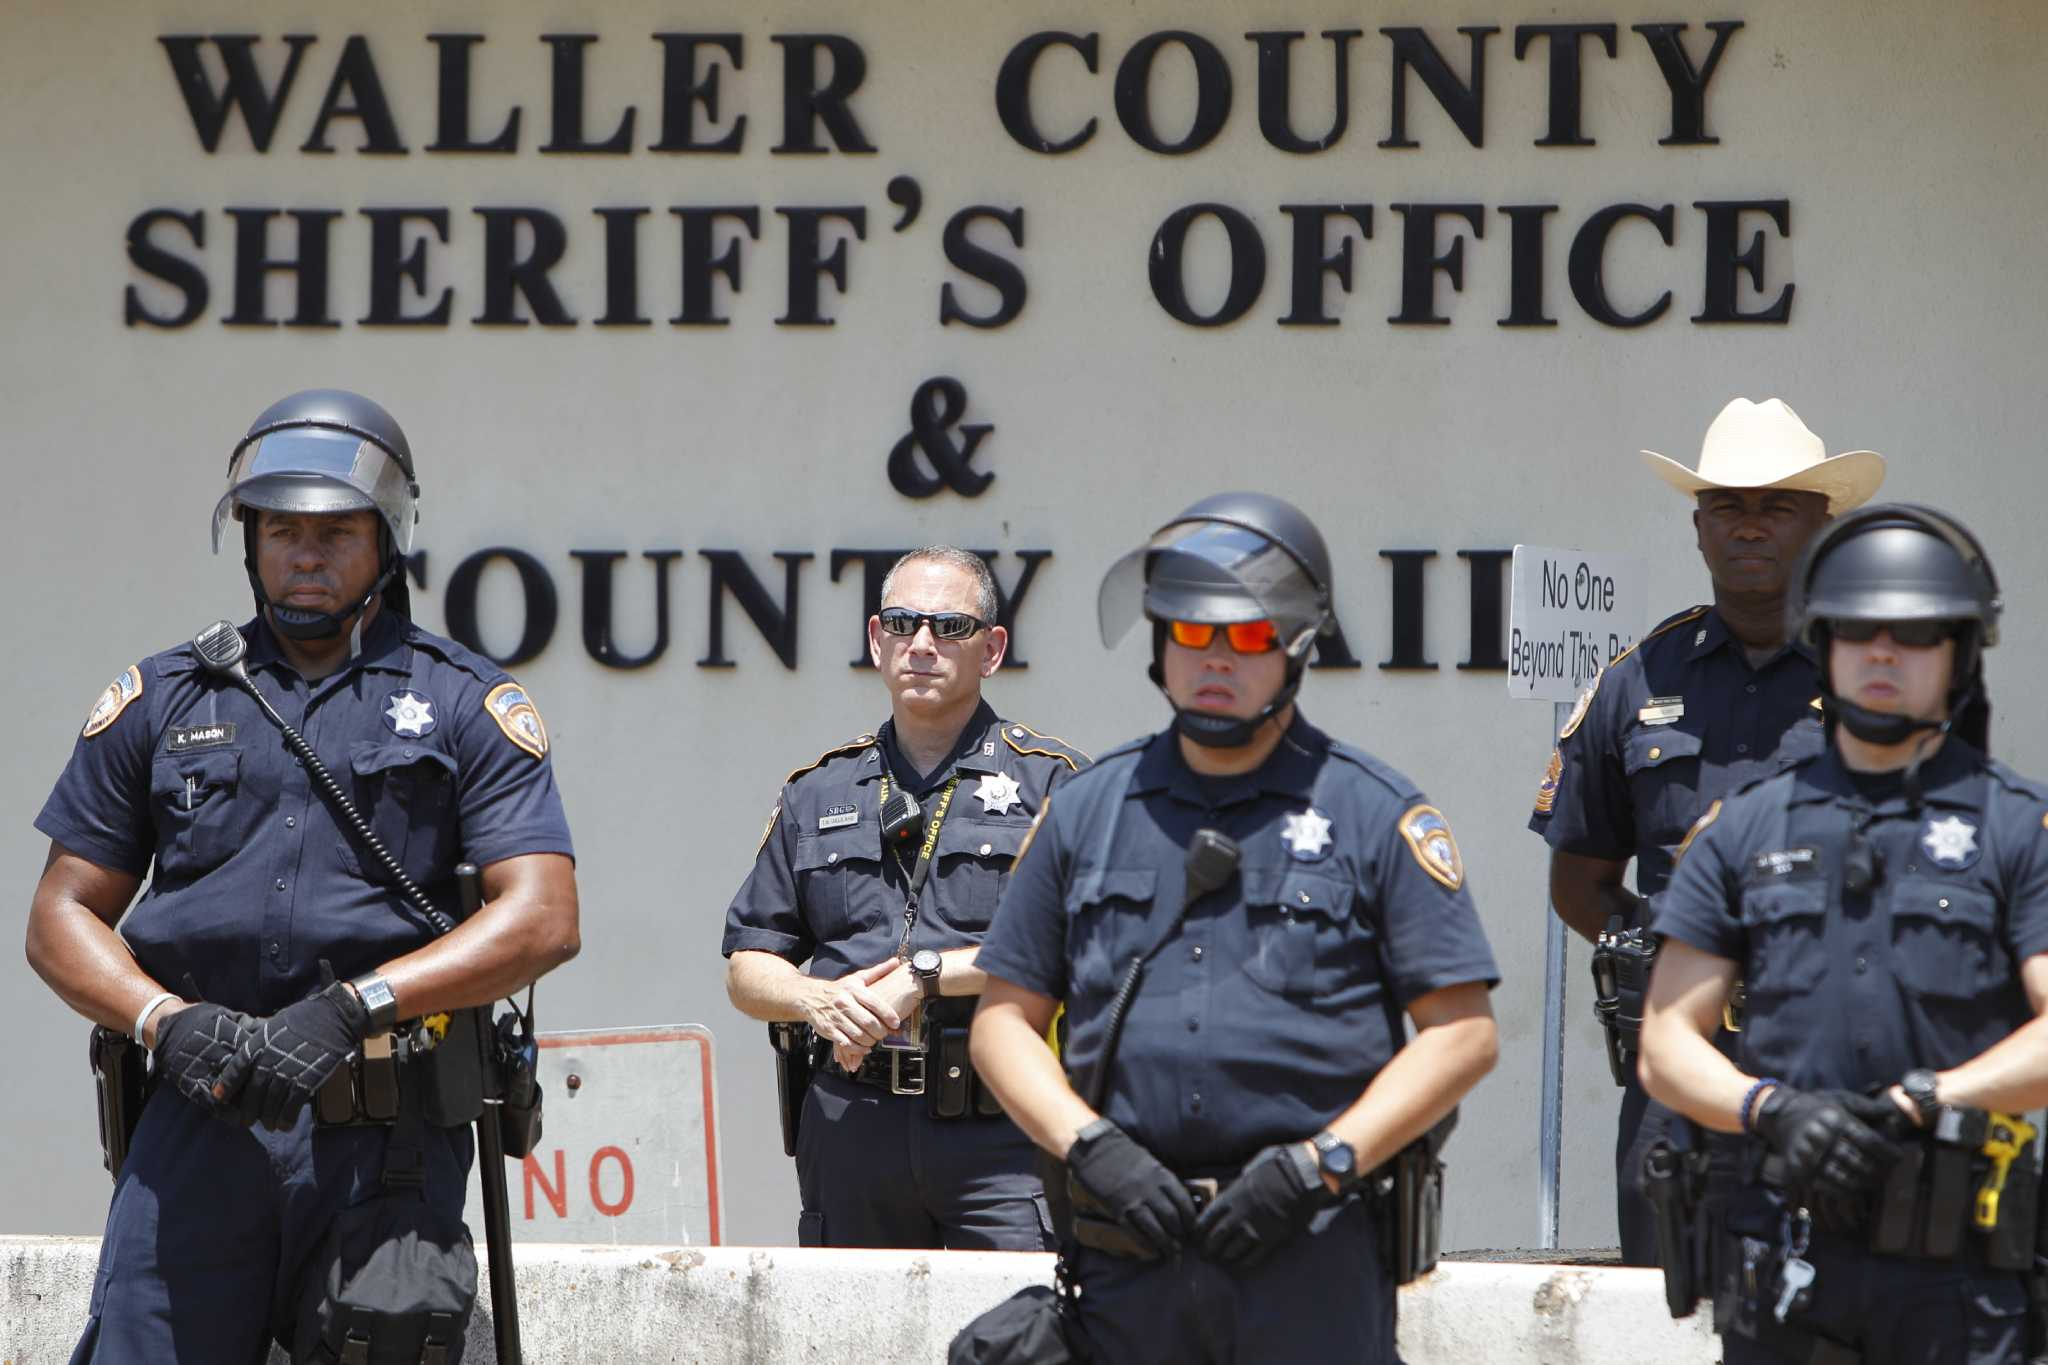 Judge: Waller County can ban guns in entire courthouse